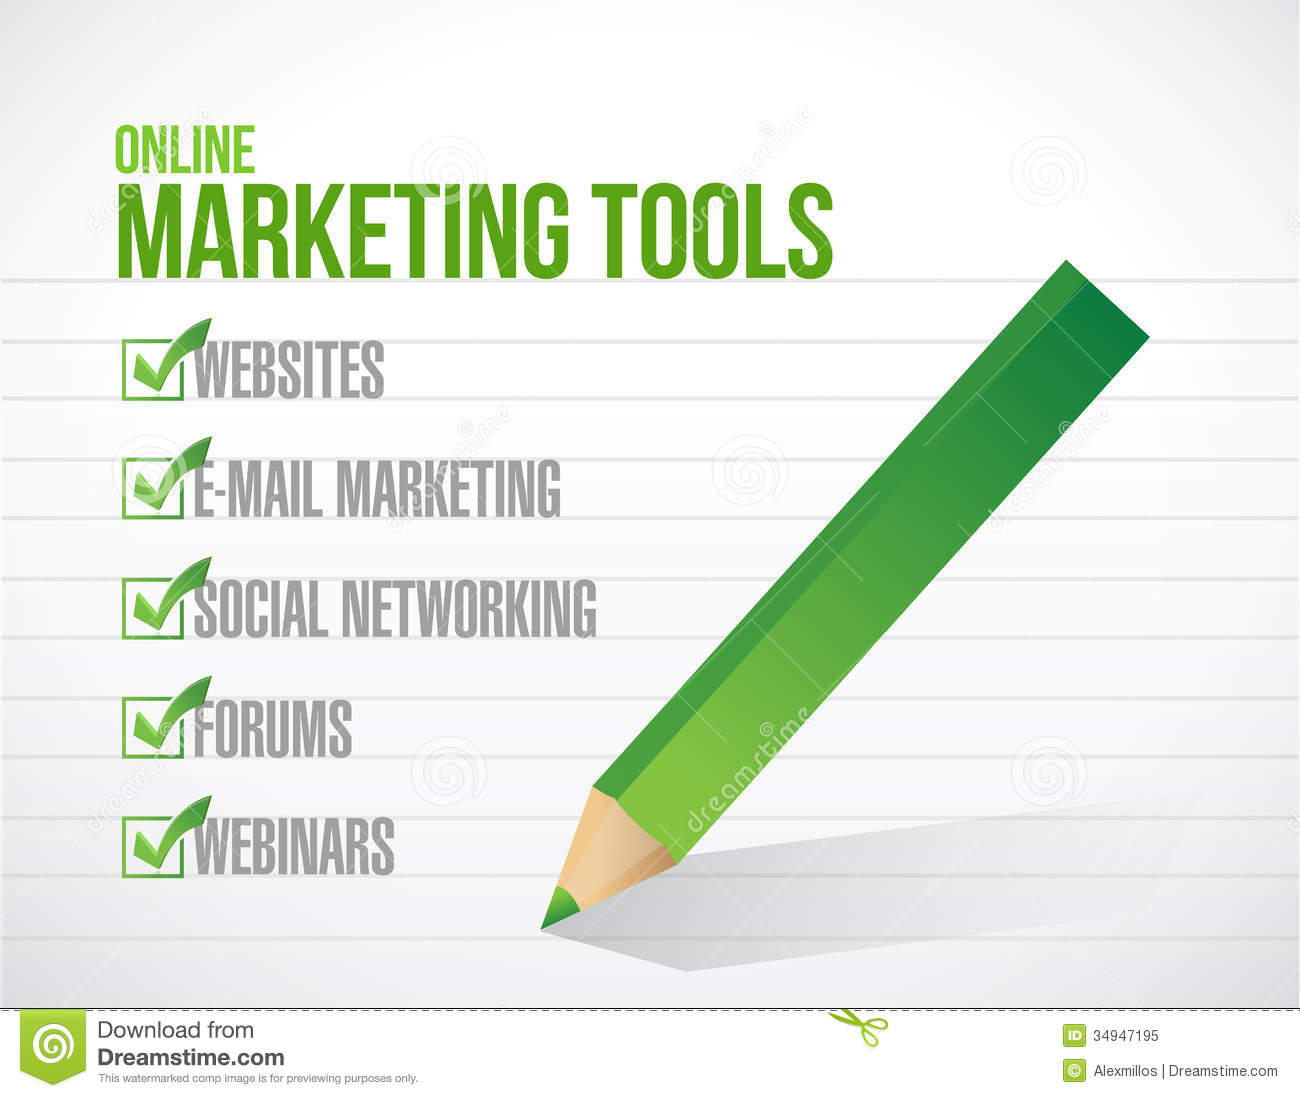 Internet Marketing Tools Free Seo Tools  Autos Post. Los Angeles Marketing Companies. Charter One Business Credit Card. Locum Tenens Physician Assistant. Online Theological Seminary T Cell Function. Insight School Of Wisconsin Bic Click Stick. Internet Addiction Articles Lover In Spanish. Human Resources College Programs. Hospital Materials Management